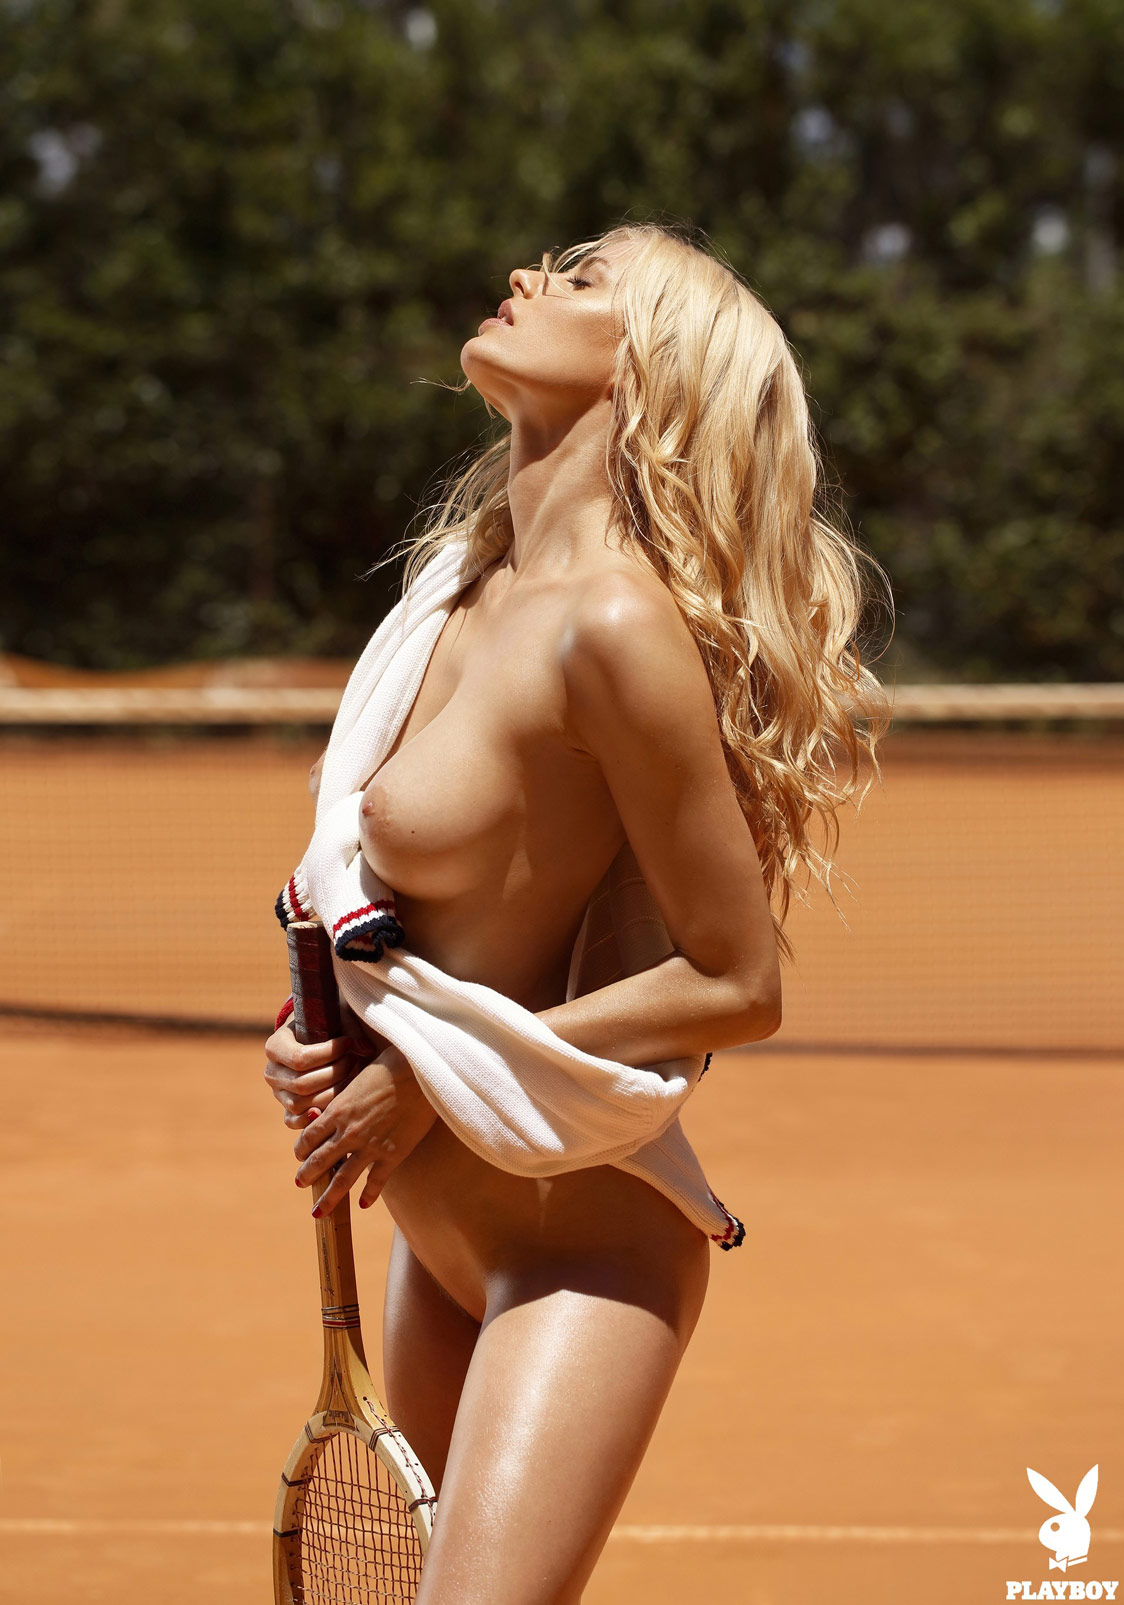 Nude women tennis court